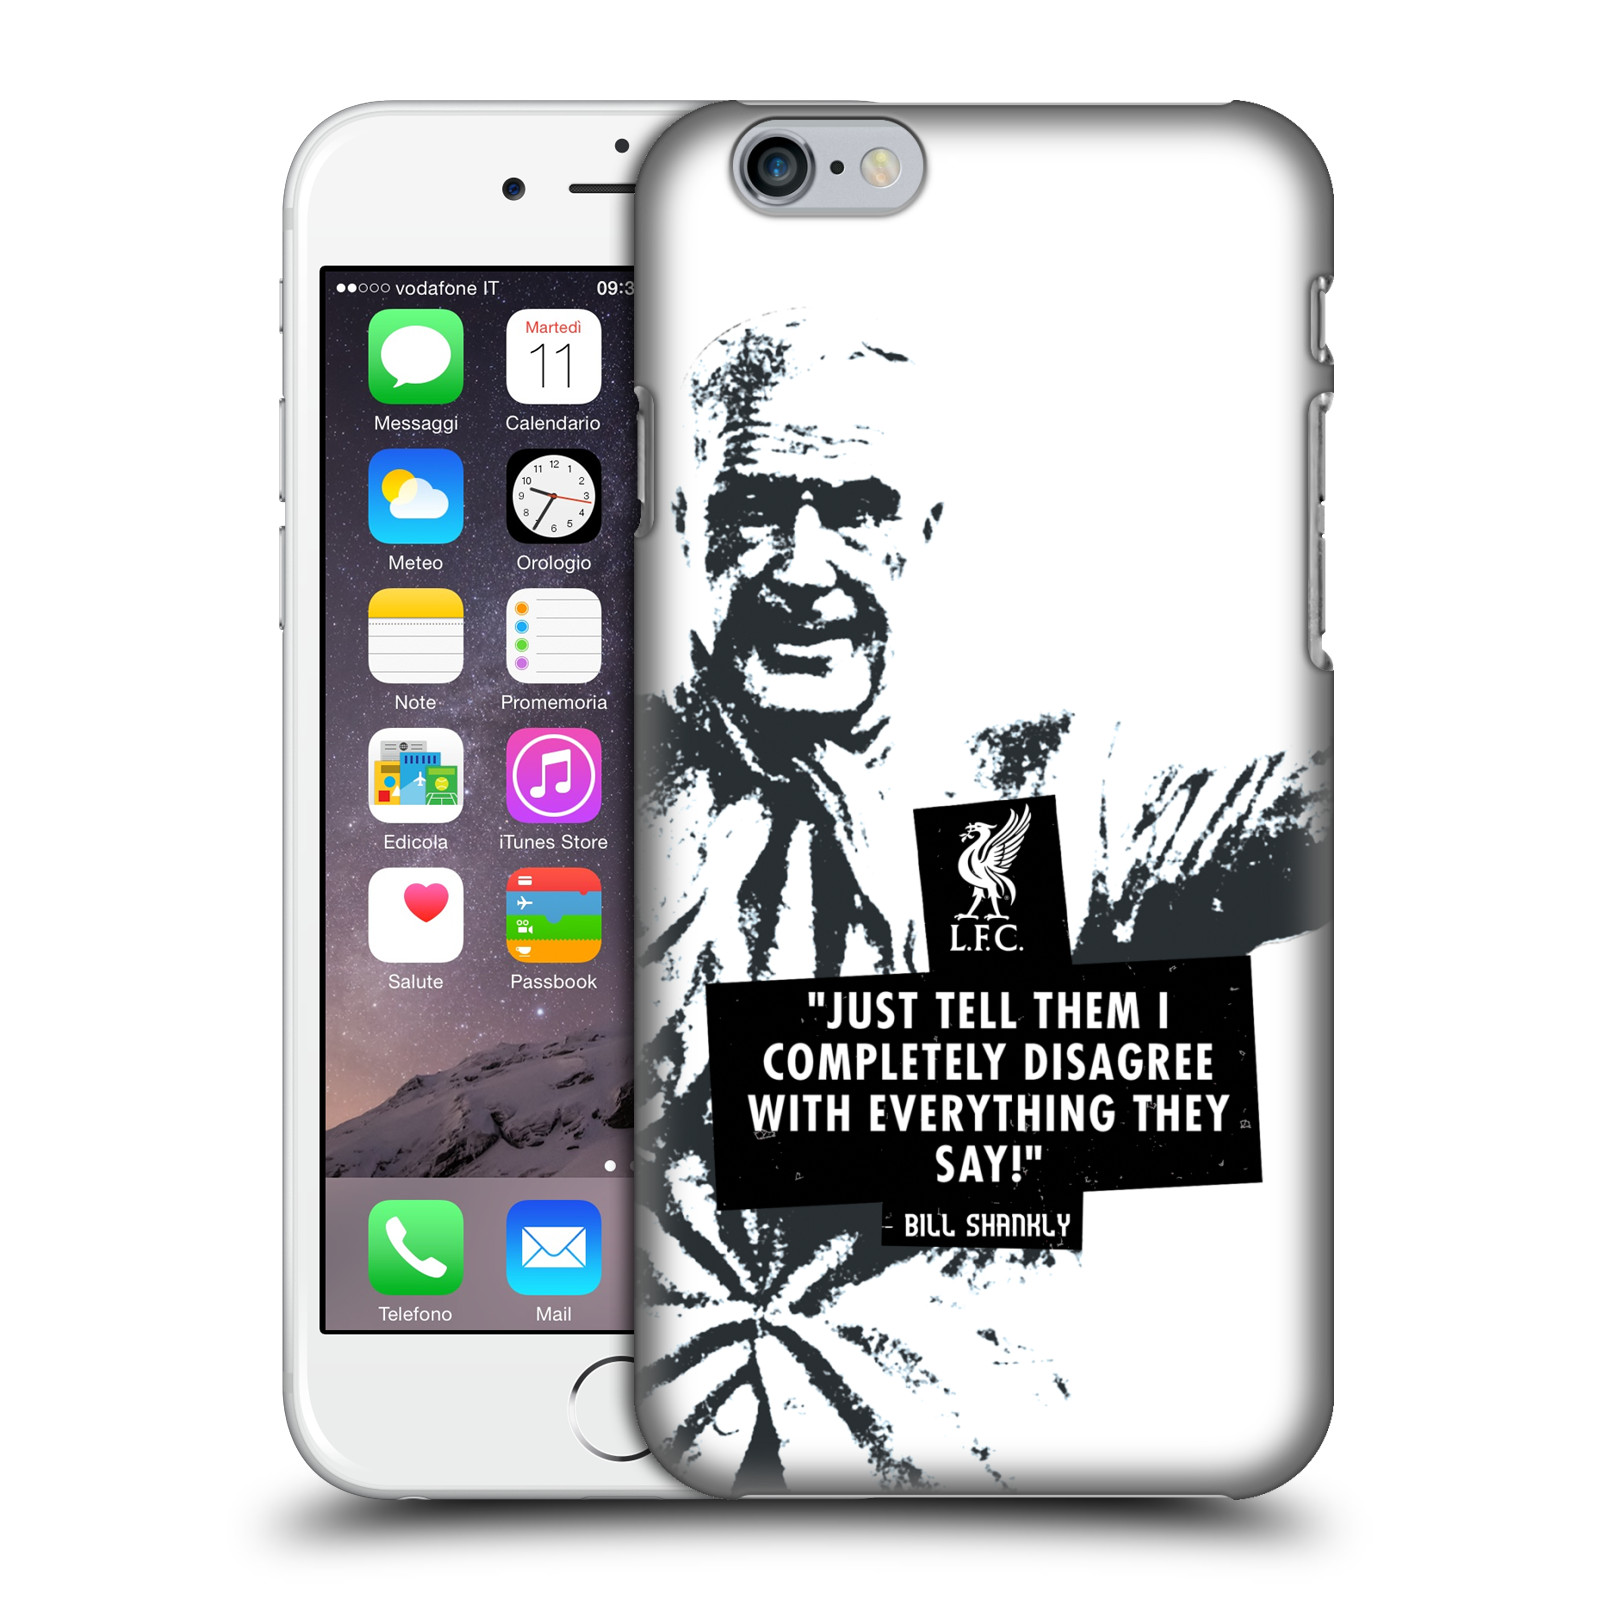 Liverpool FC LFC Bill Shankly Quotes-Disagree Black